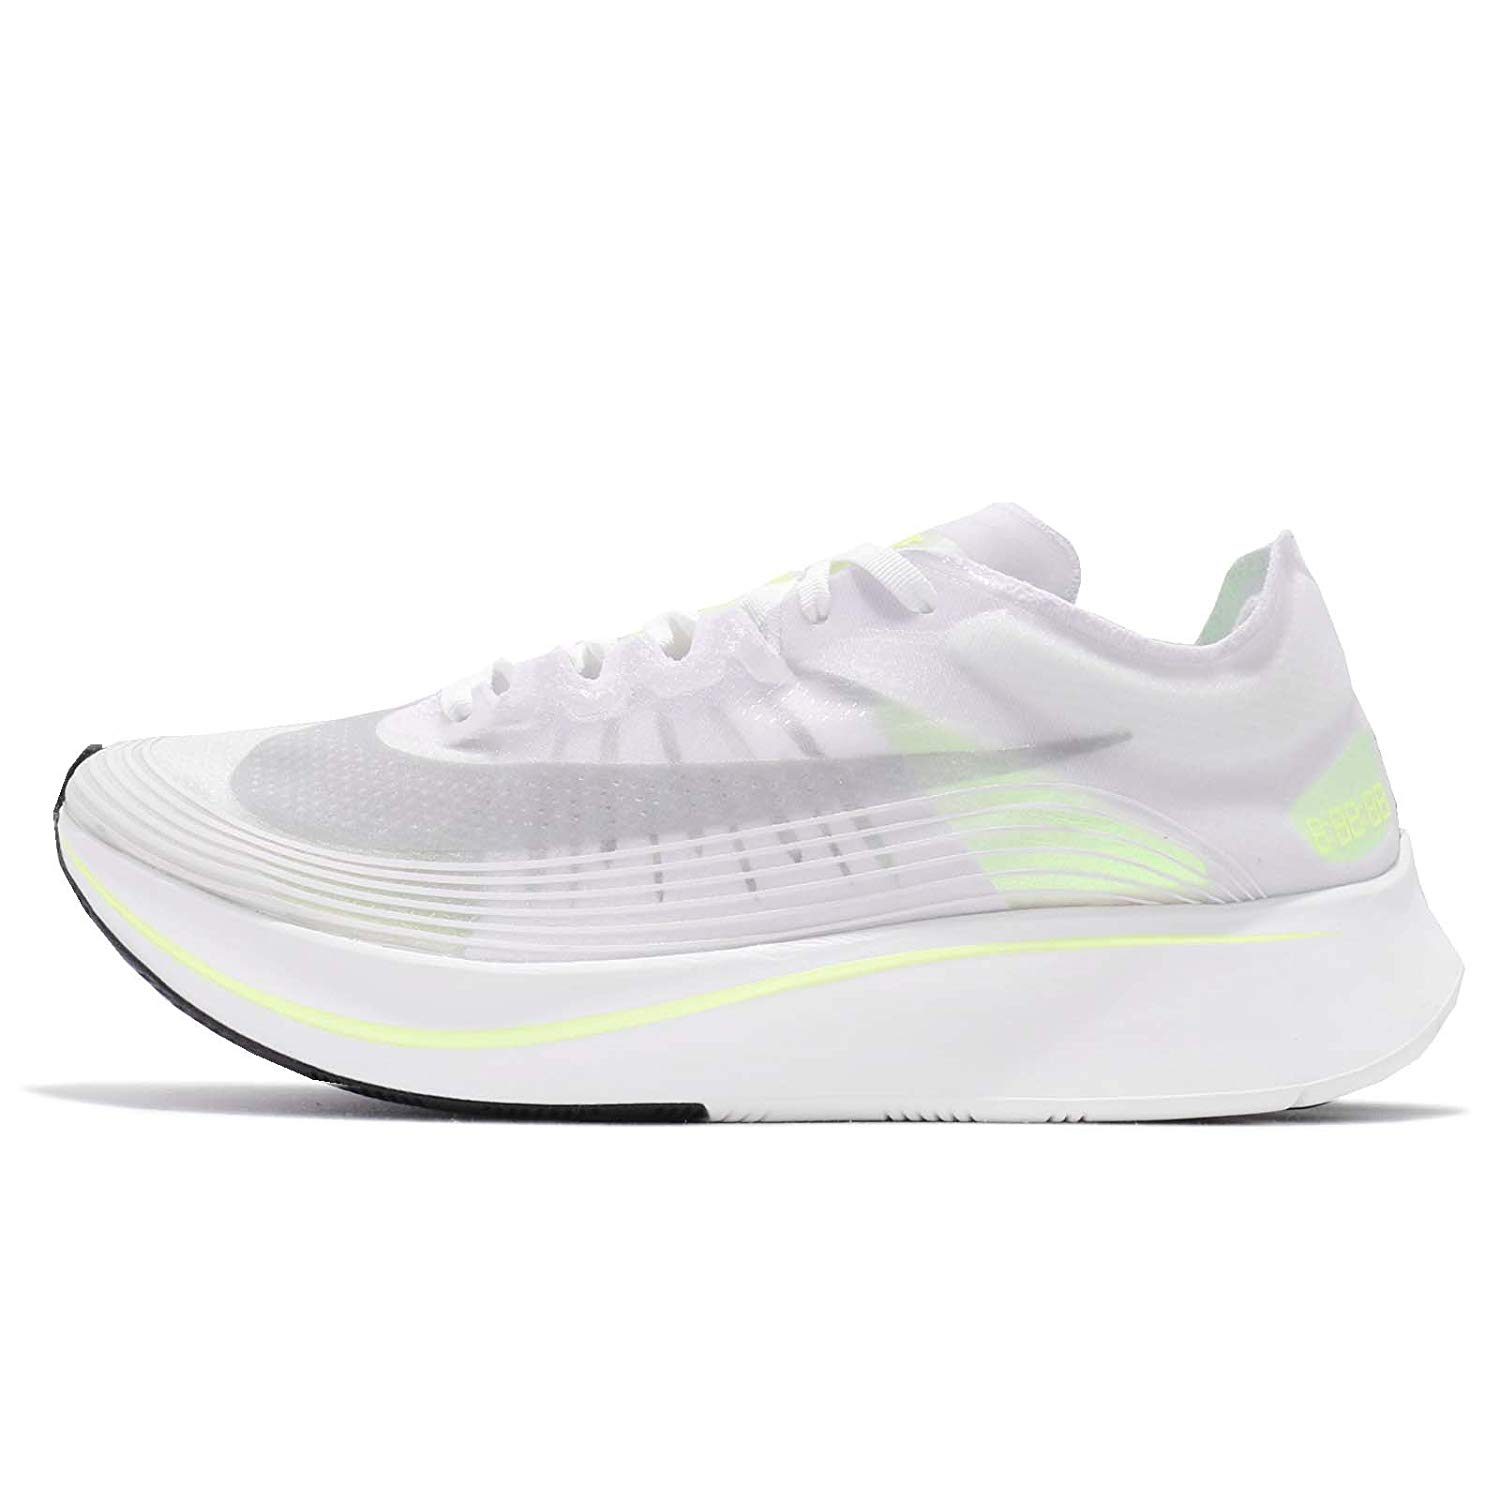 sports shoes d7e78 dc622 Nike Mens Zoom Fly SP Running Shoes